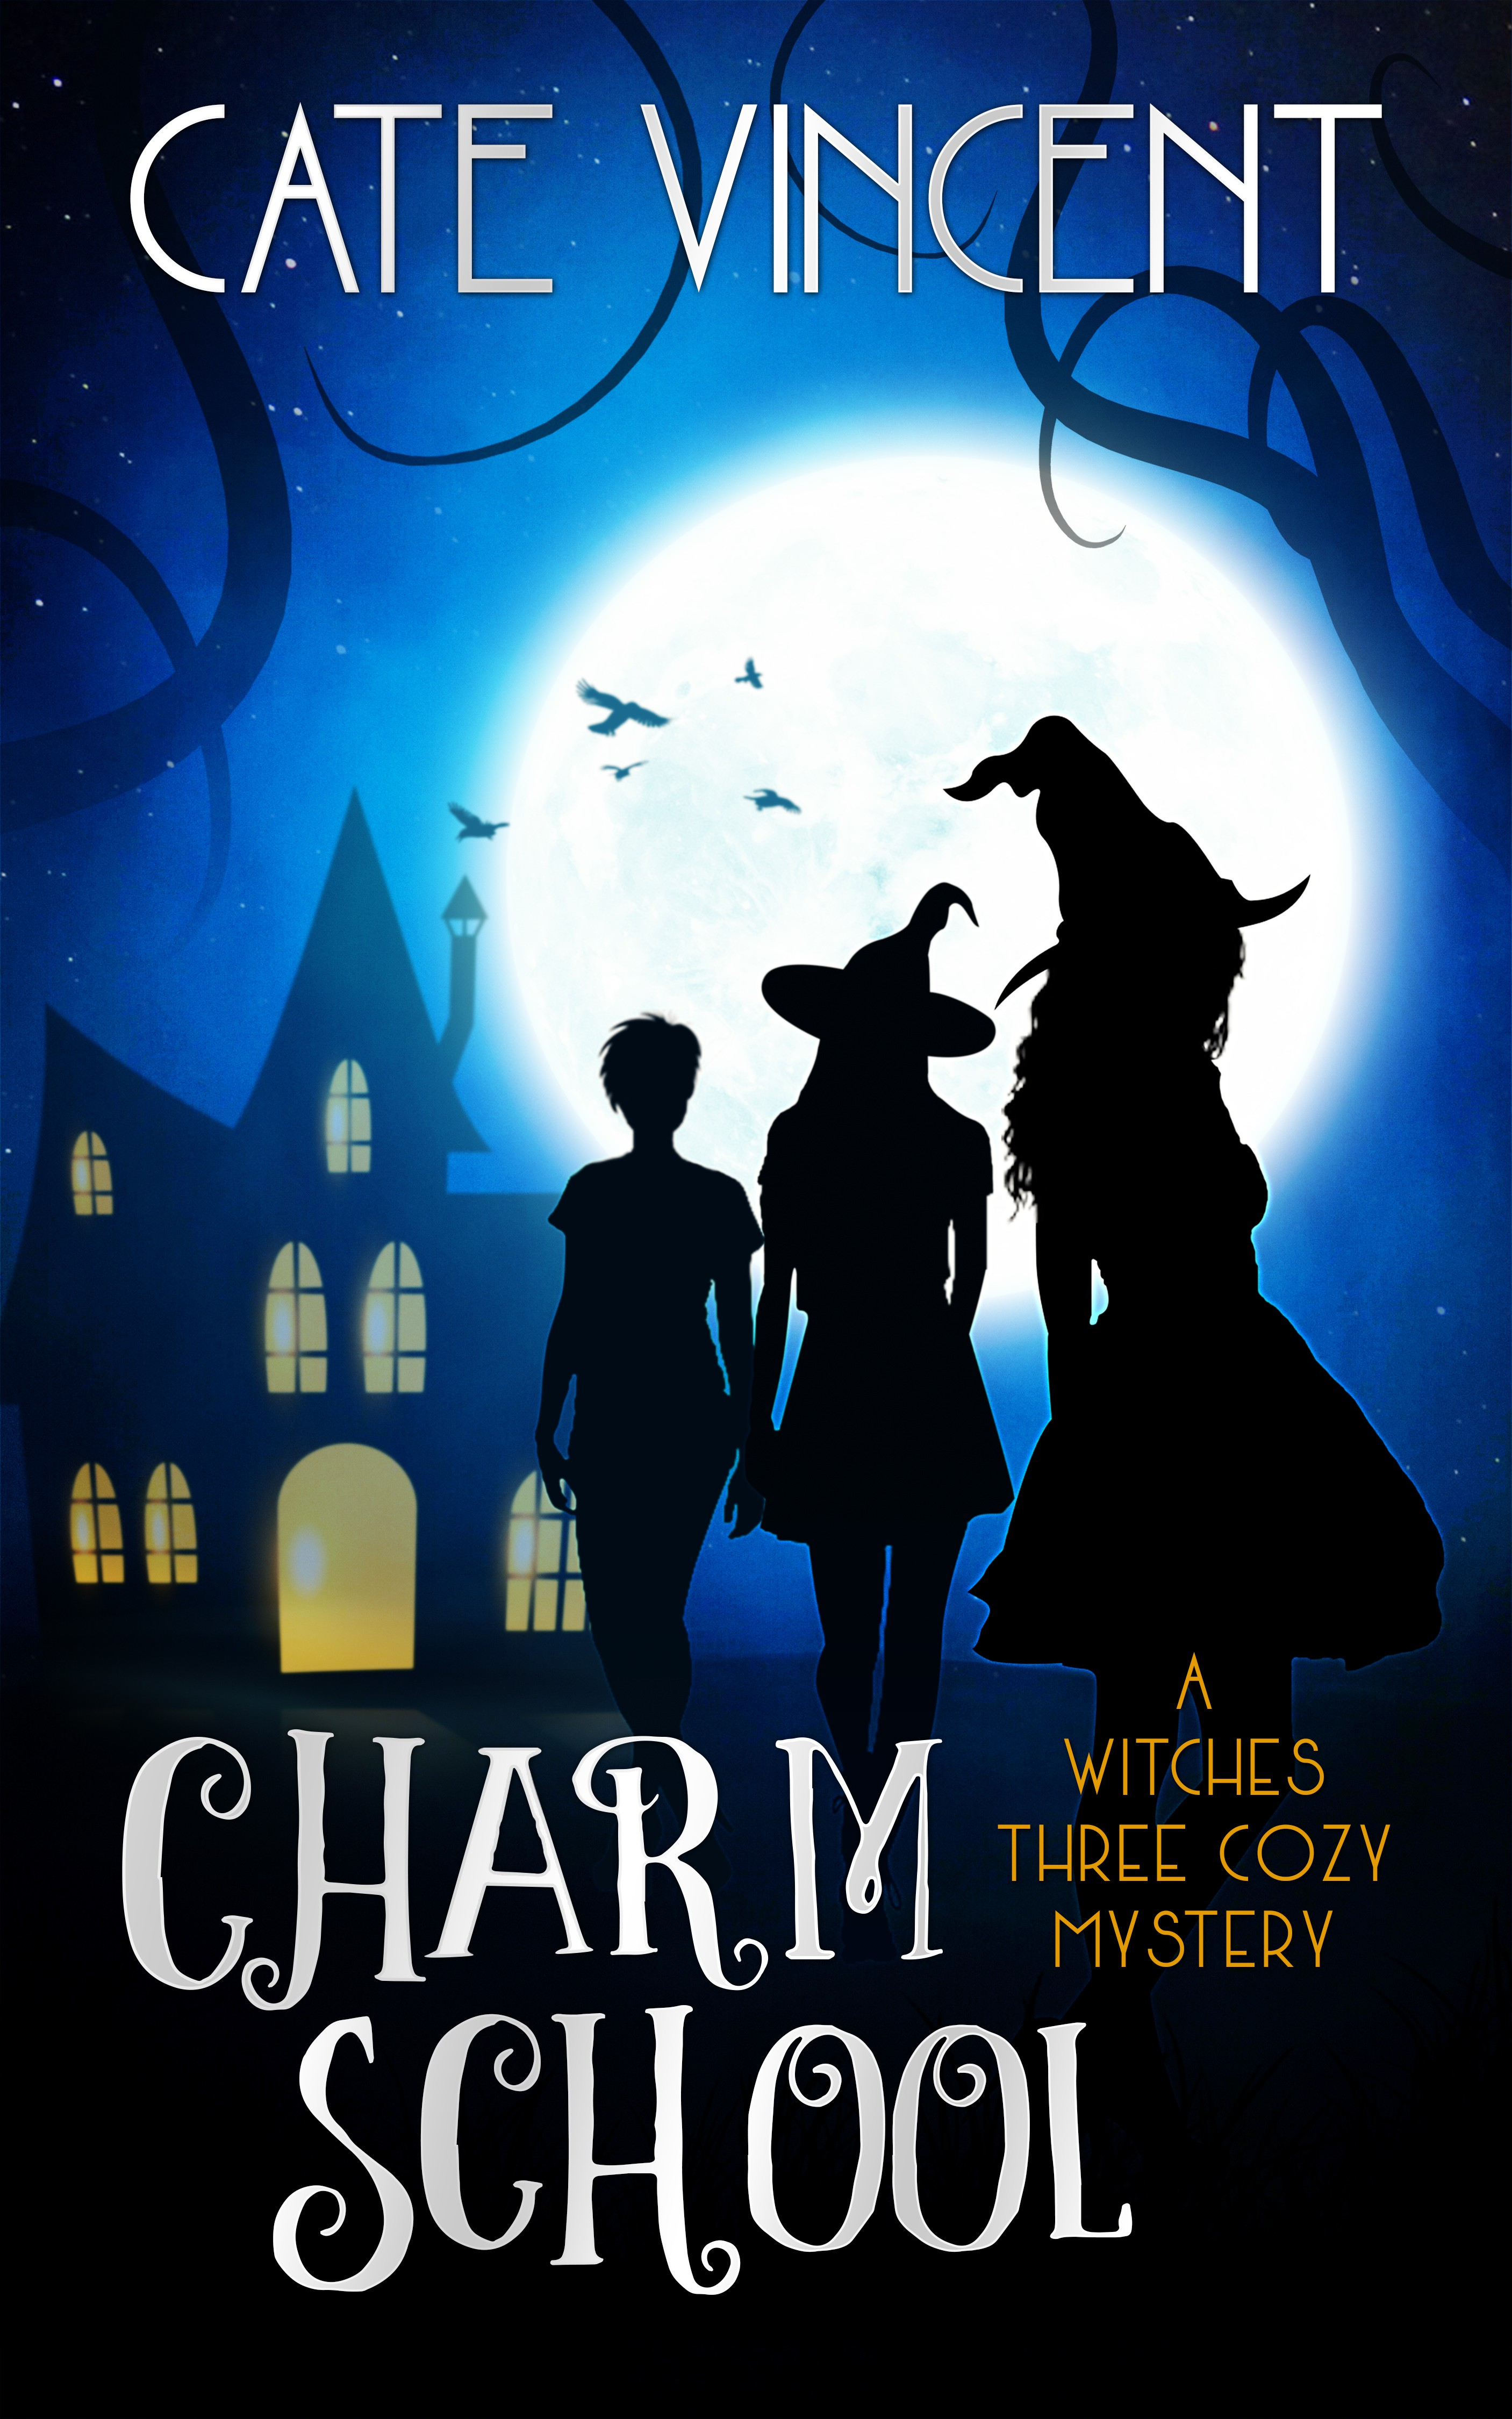 A witchy cozy mystery novel needs an attention-grabbing cover